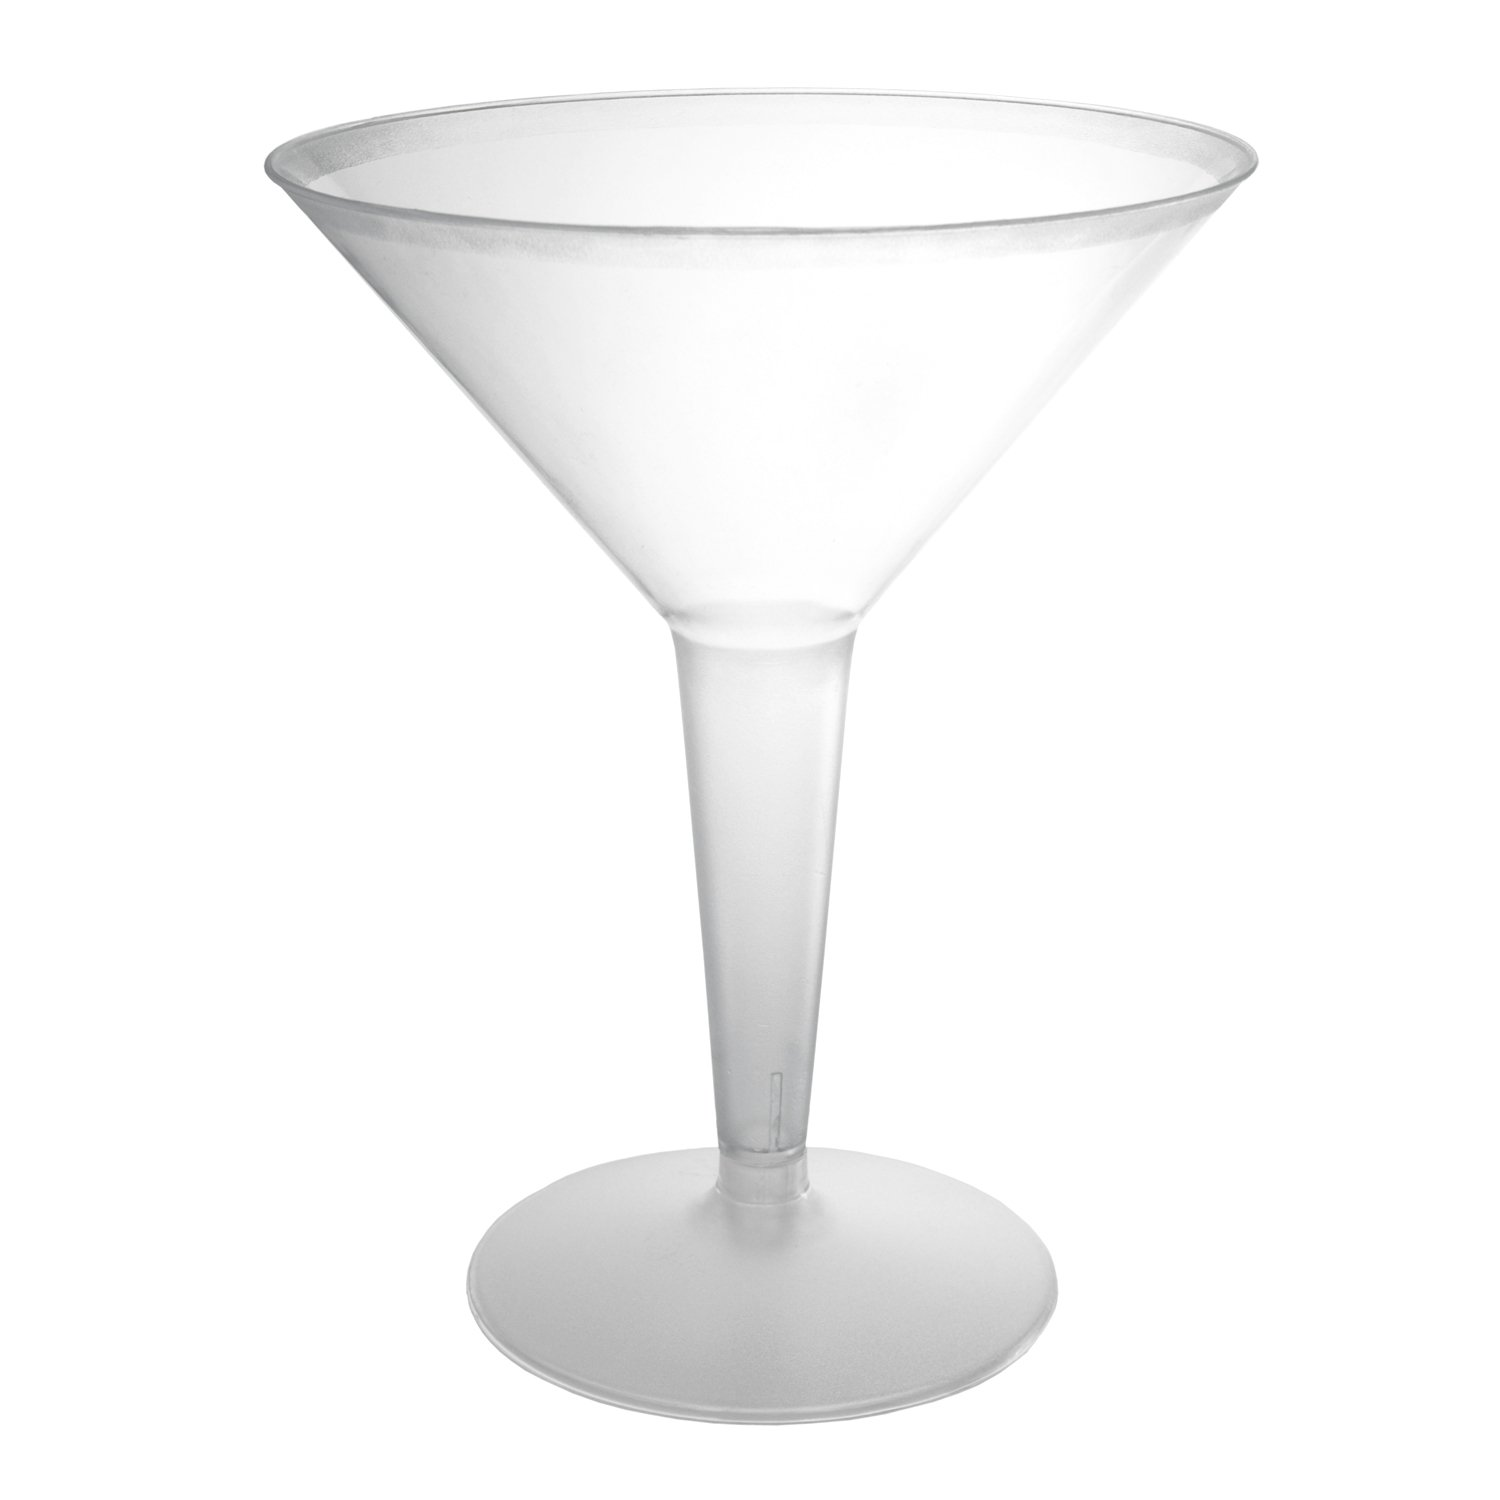 Party Essentials Hard Plastic 2-Piece Martini Glass, 8-Ounce Capacity, Clear, For Martinis, Appetizers, Mash Potatoes, Veggies Dip Stations, Bar & More (Case of 96)